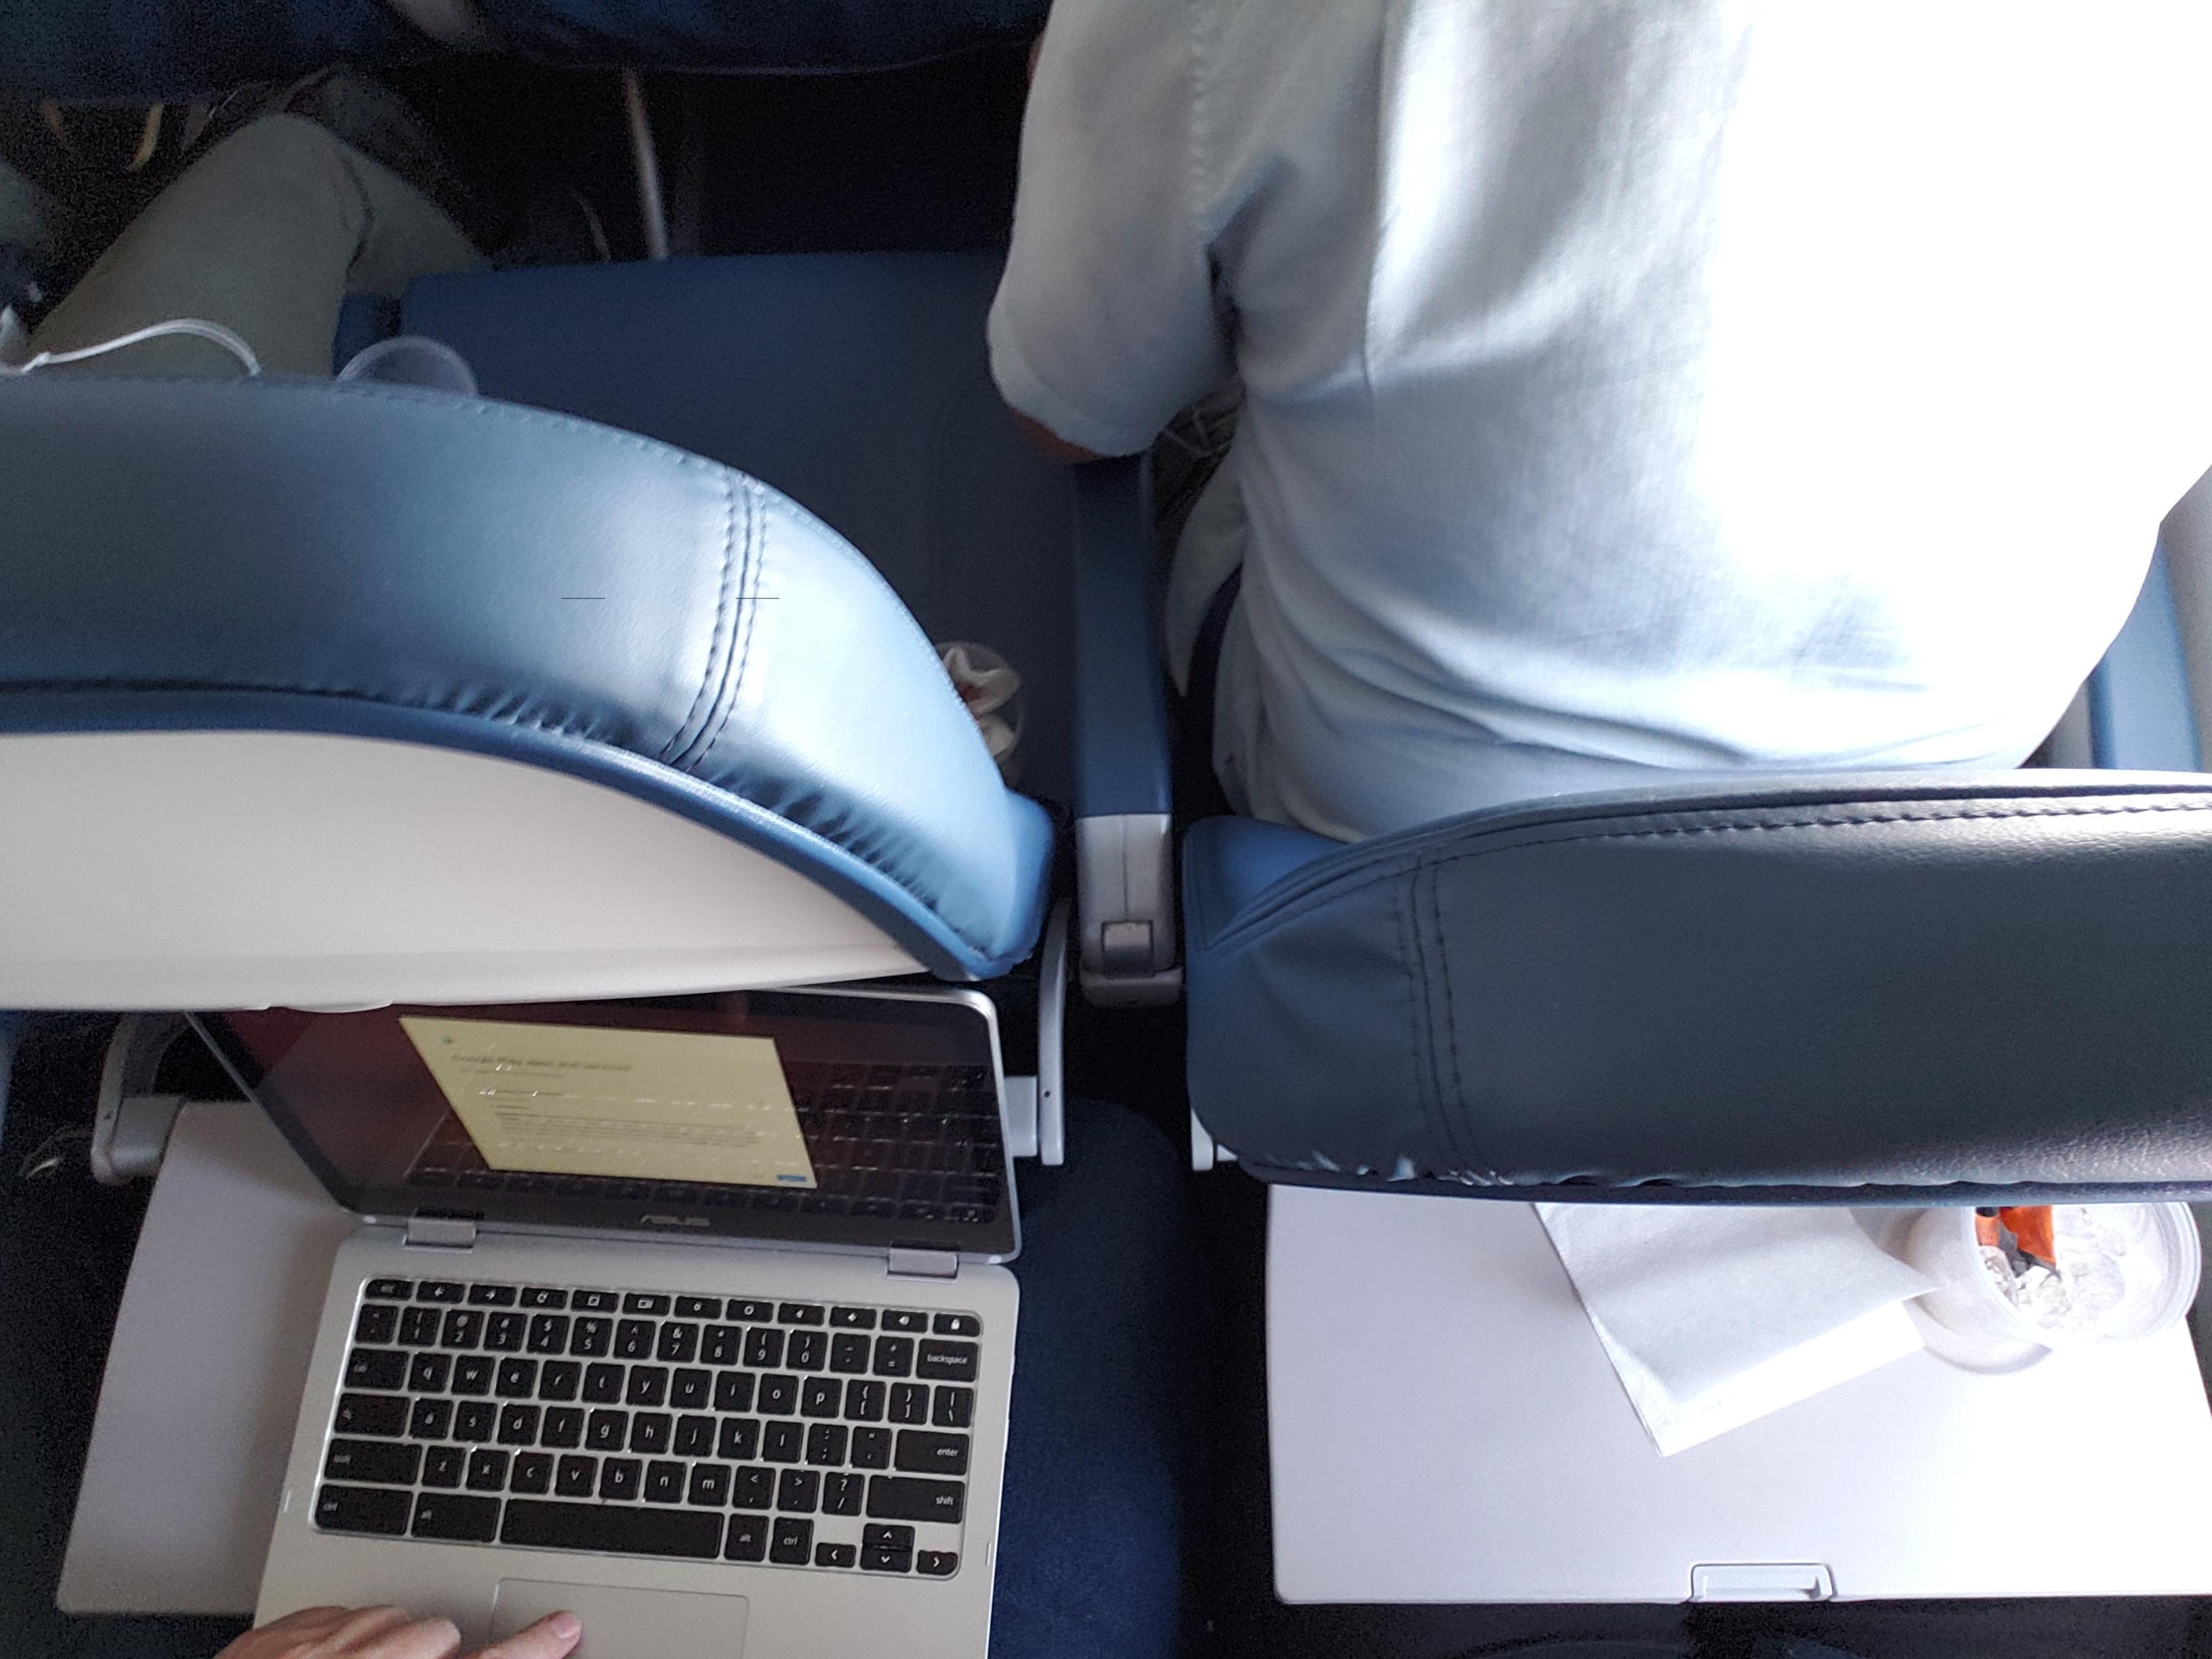 desk chair leans forward tattoo chairs reclining your seat back on the plane but leaning whole mildlyinfuriating